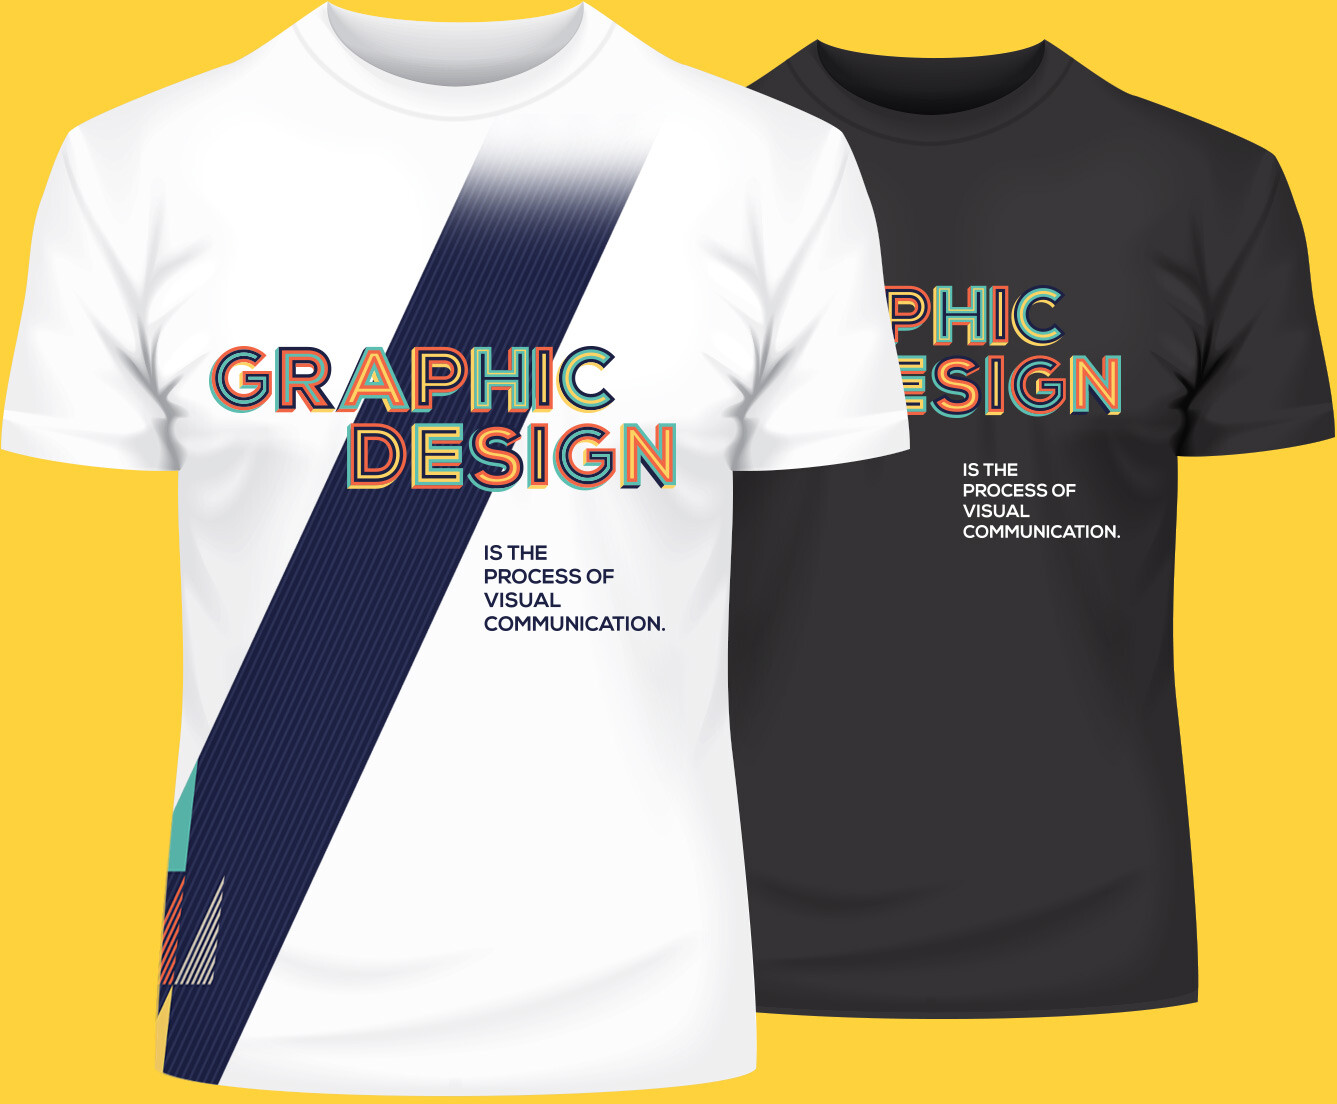 b8650b2b Custom Printed Best T-Shirts Online - Design Your Own T-Shirts